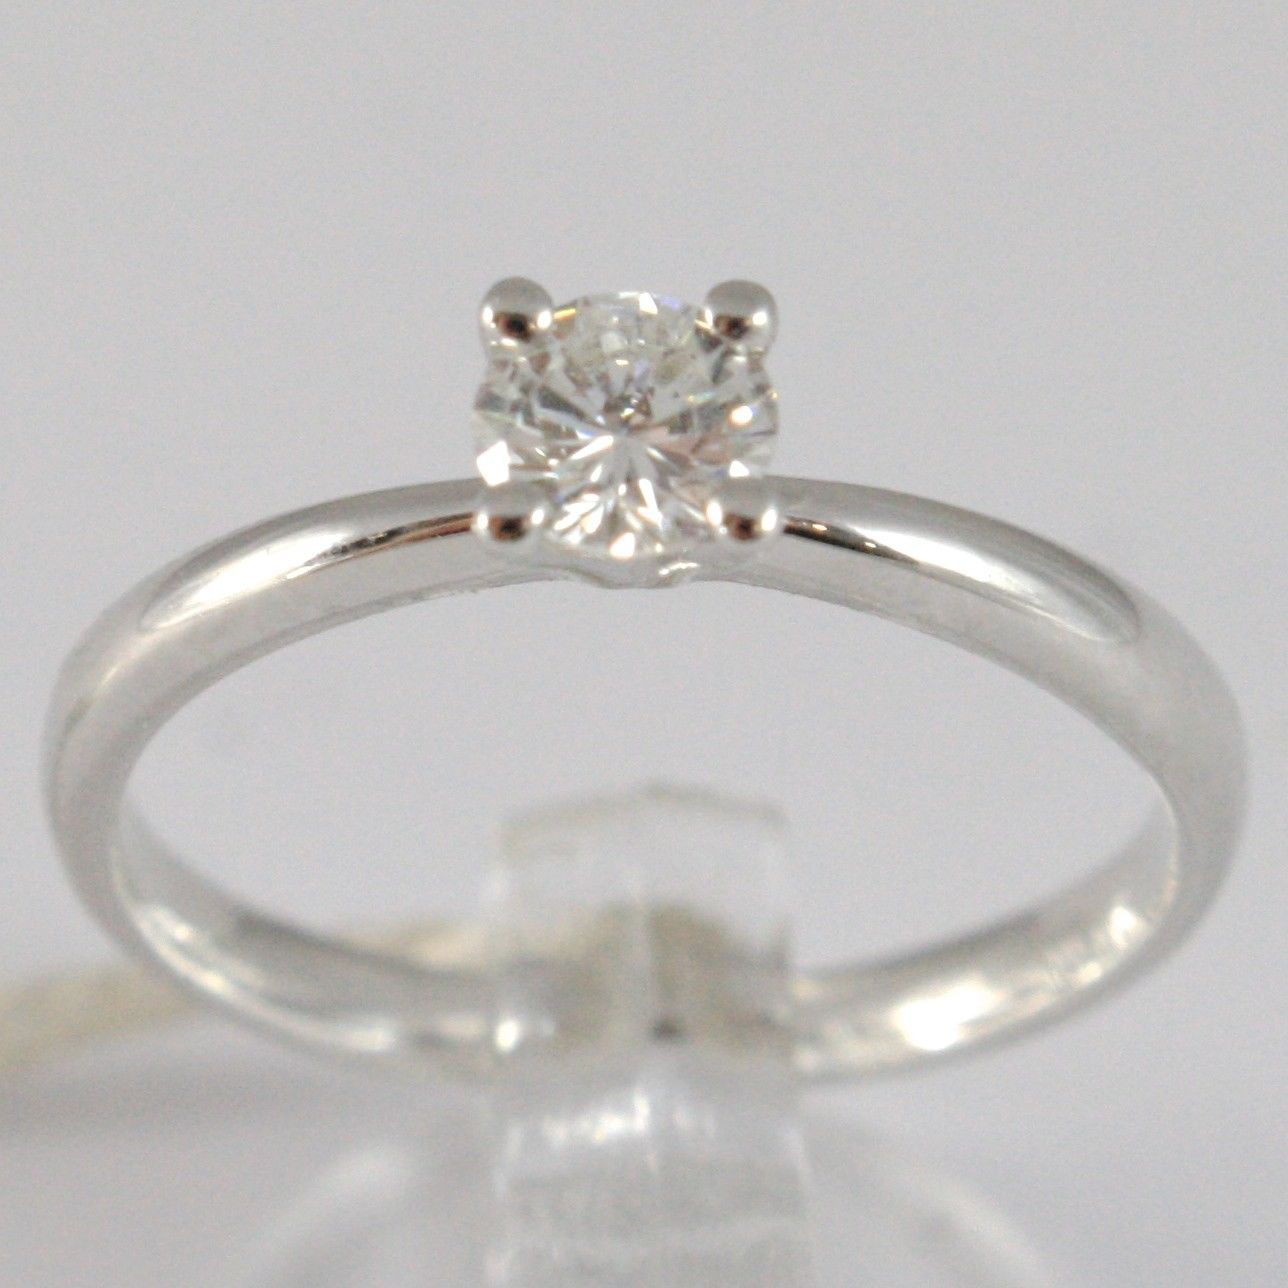 BAGUE EN OR BLANC 750 18K, SOLITAIRE, TIGE ARRONDIS, DIAMANT CARAT 0.32